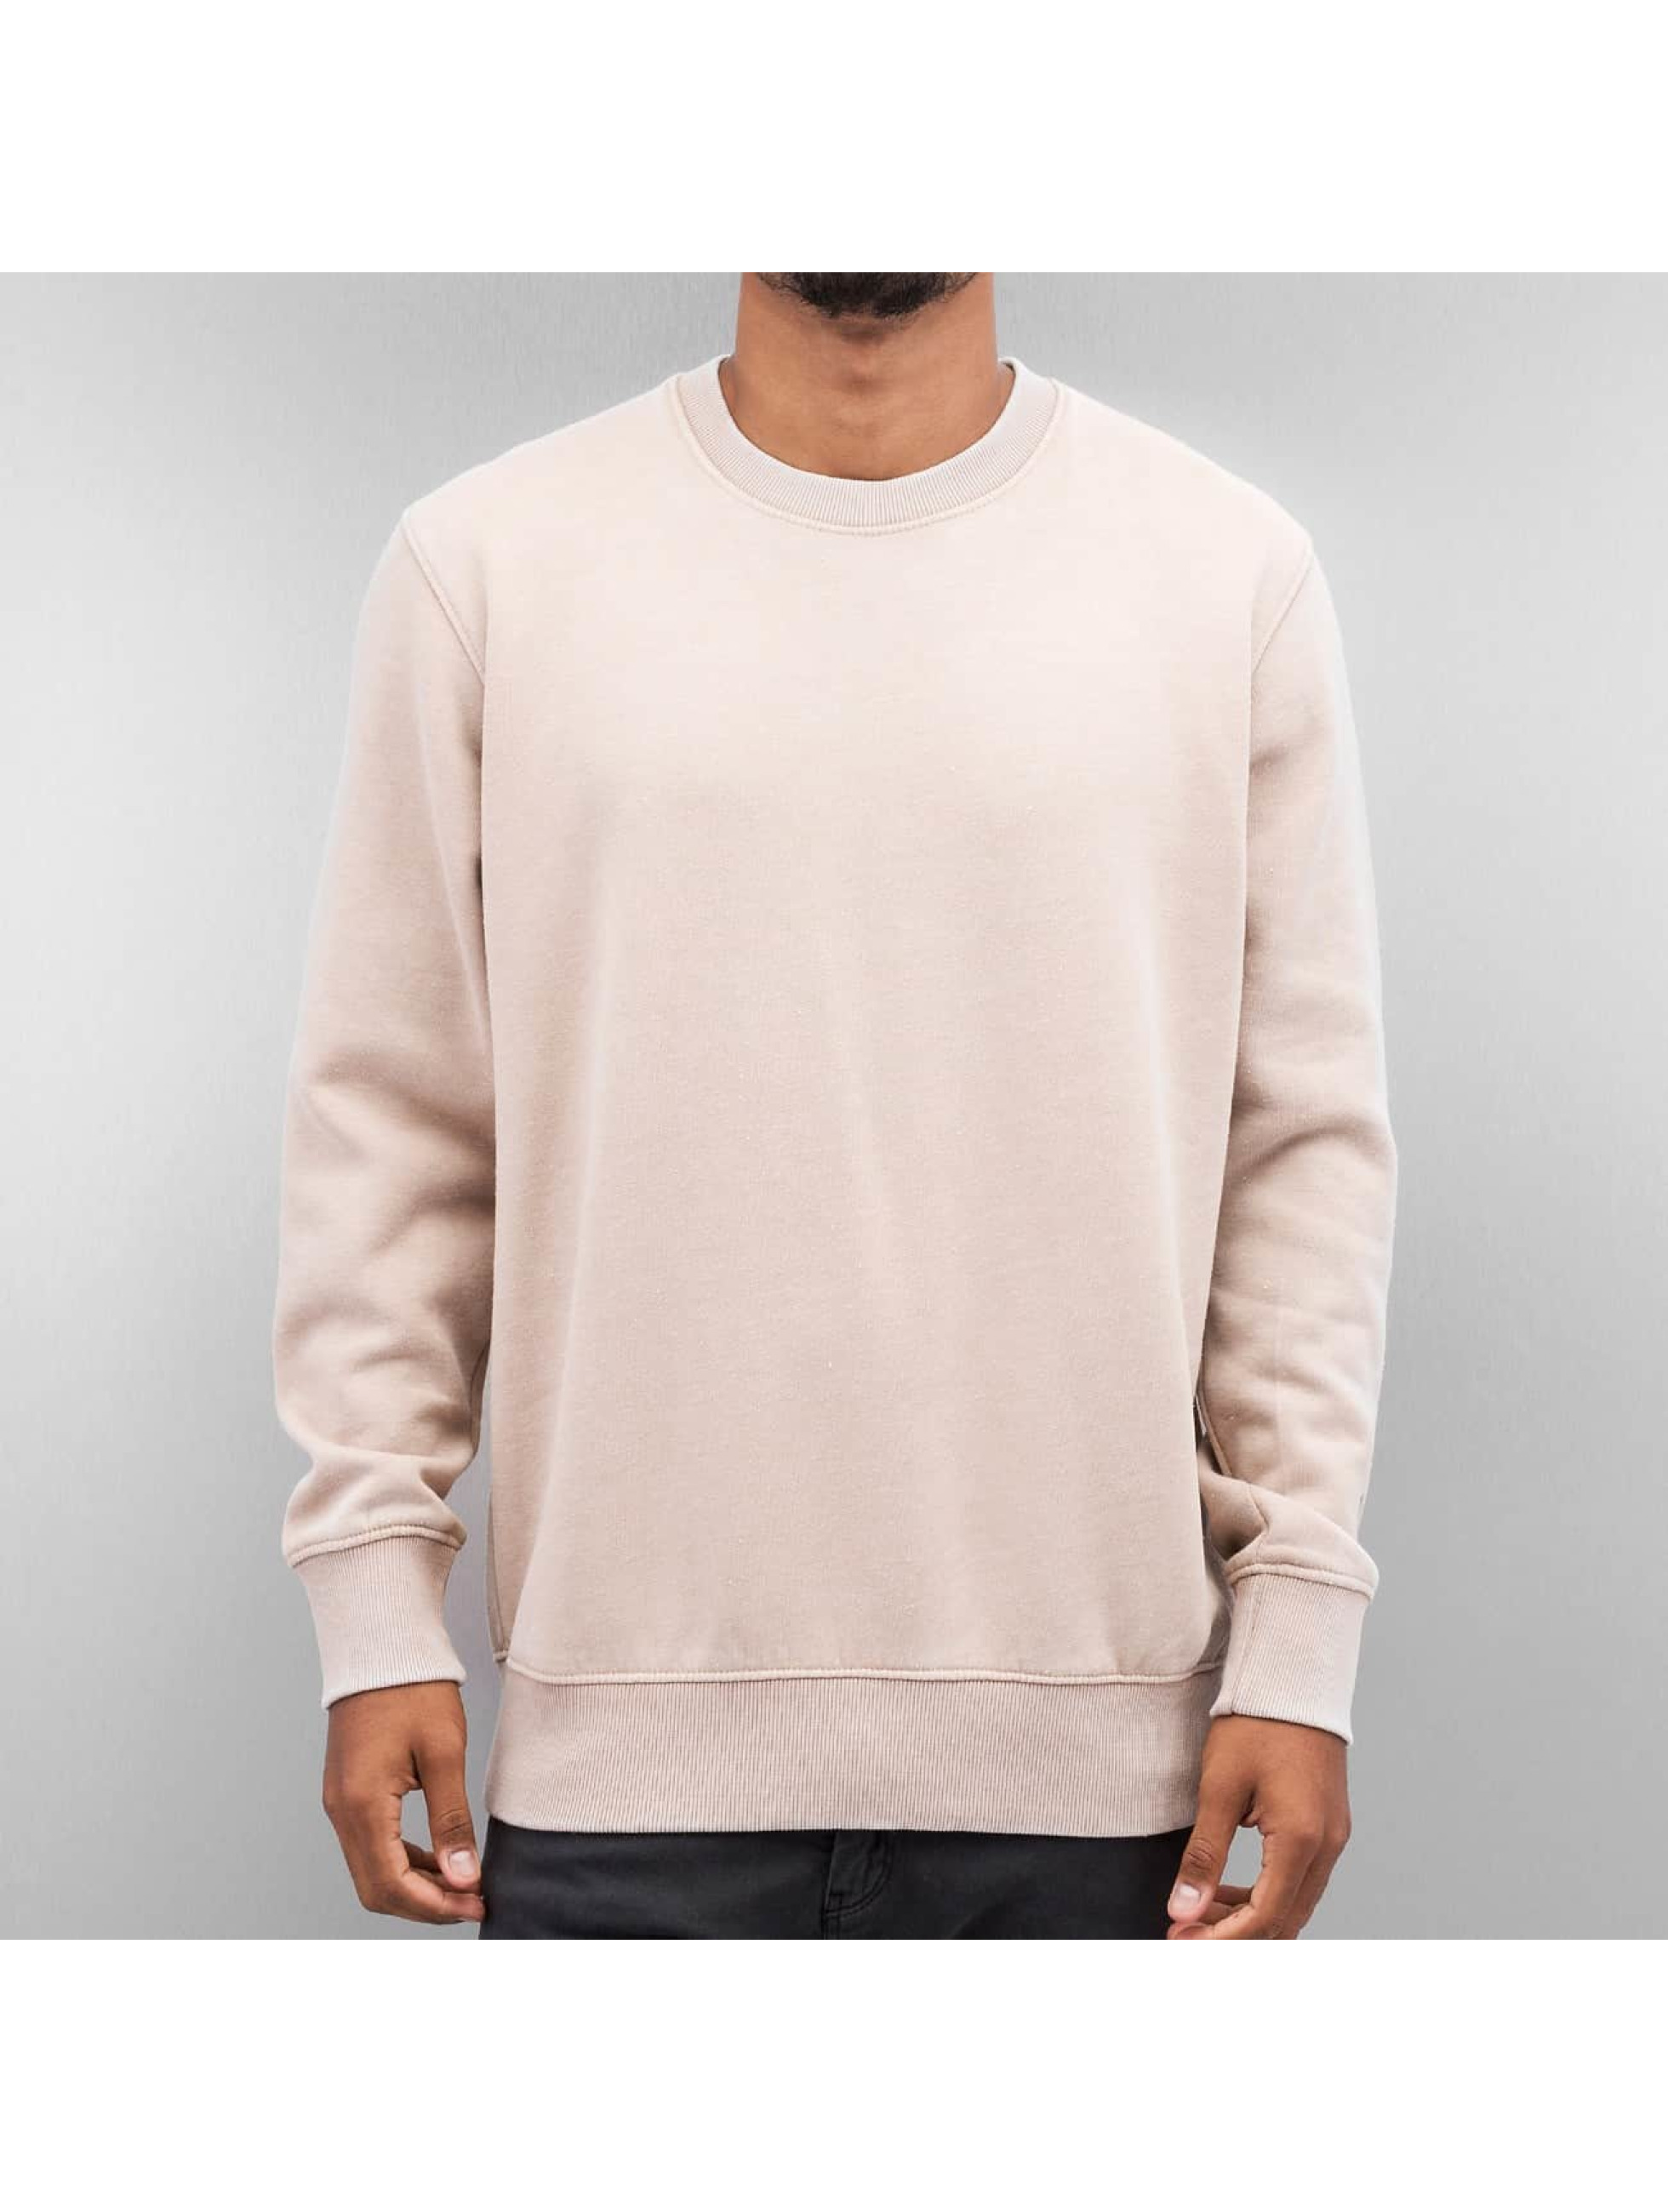 Yezz Nero Burnout Sweatshirt Ecru Sale Angebote Hosena